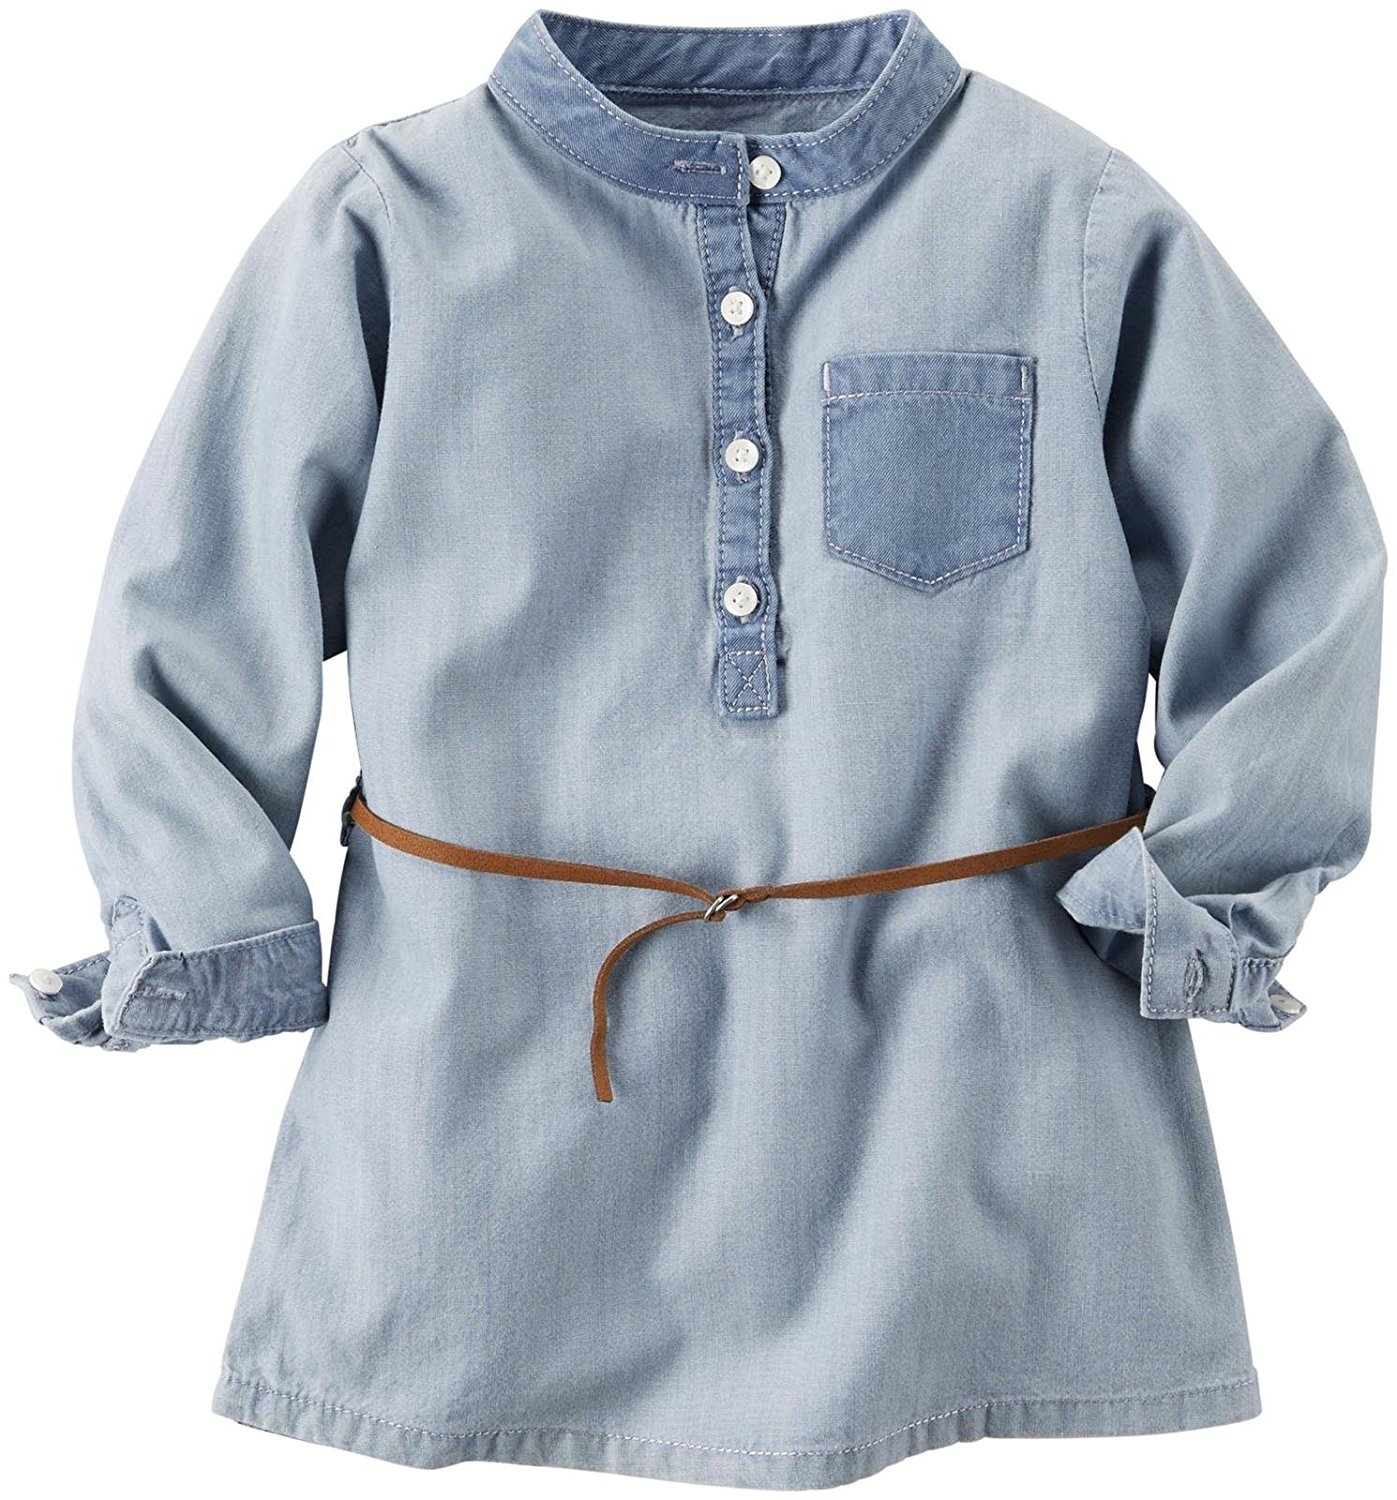 ac8f15893f Get Quotations · Carter s Woven Chambray Tunic (Toddler Kid)